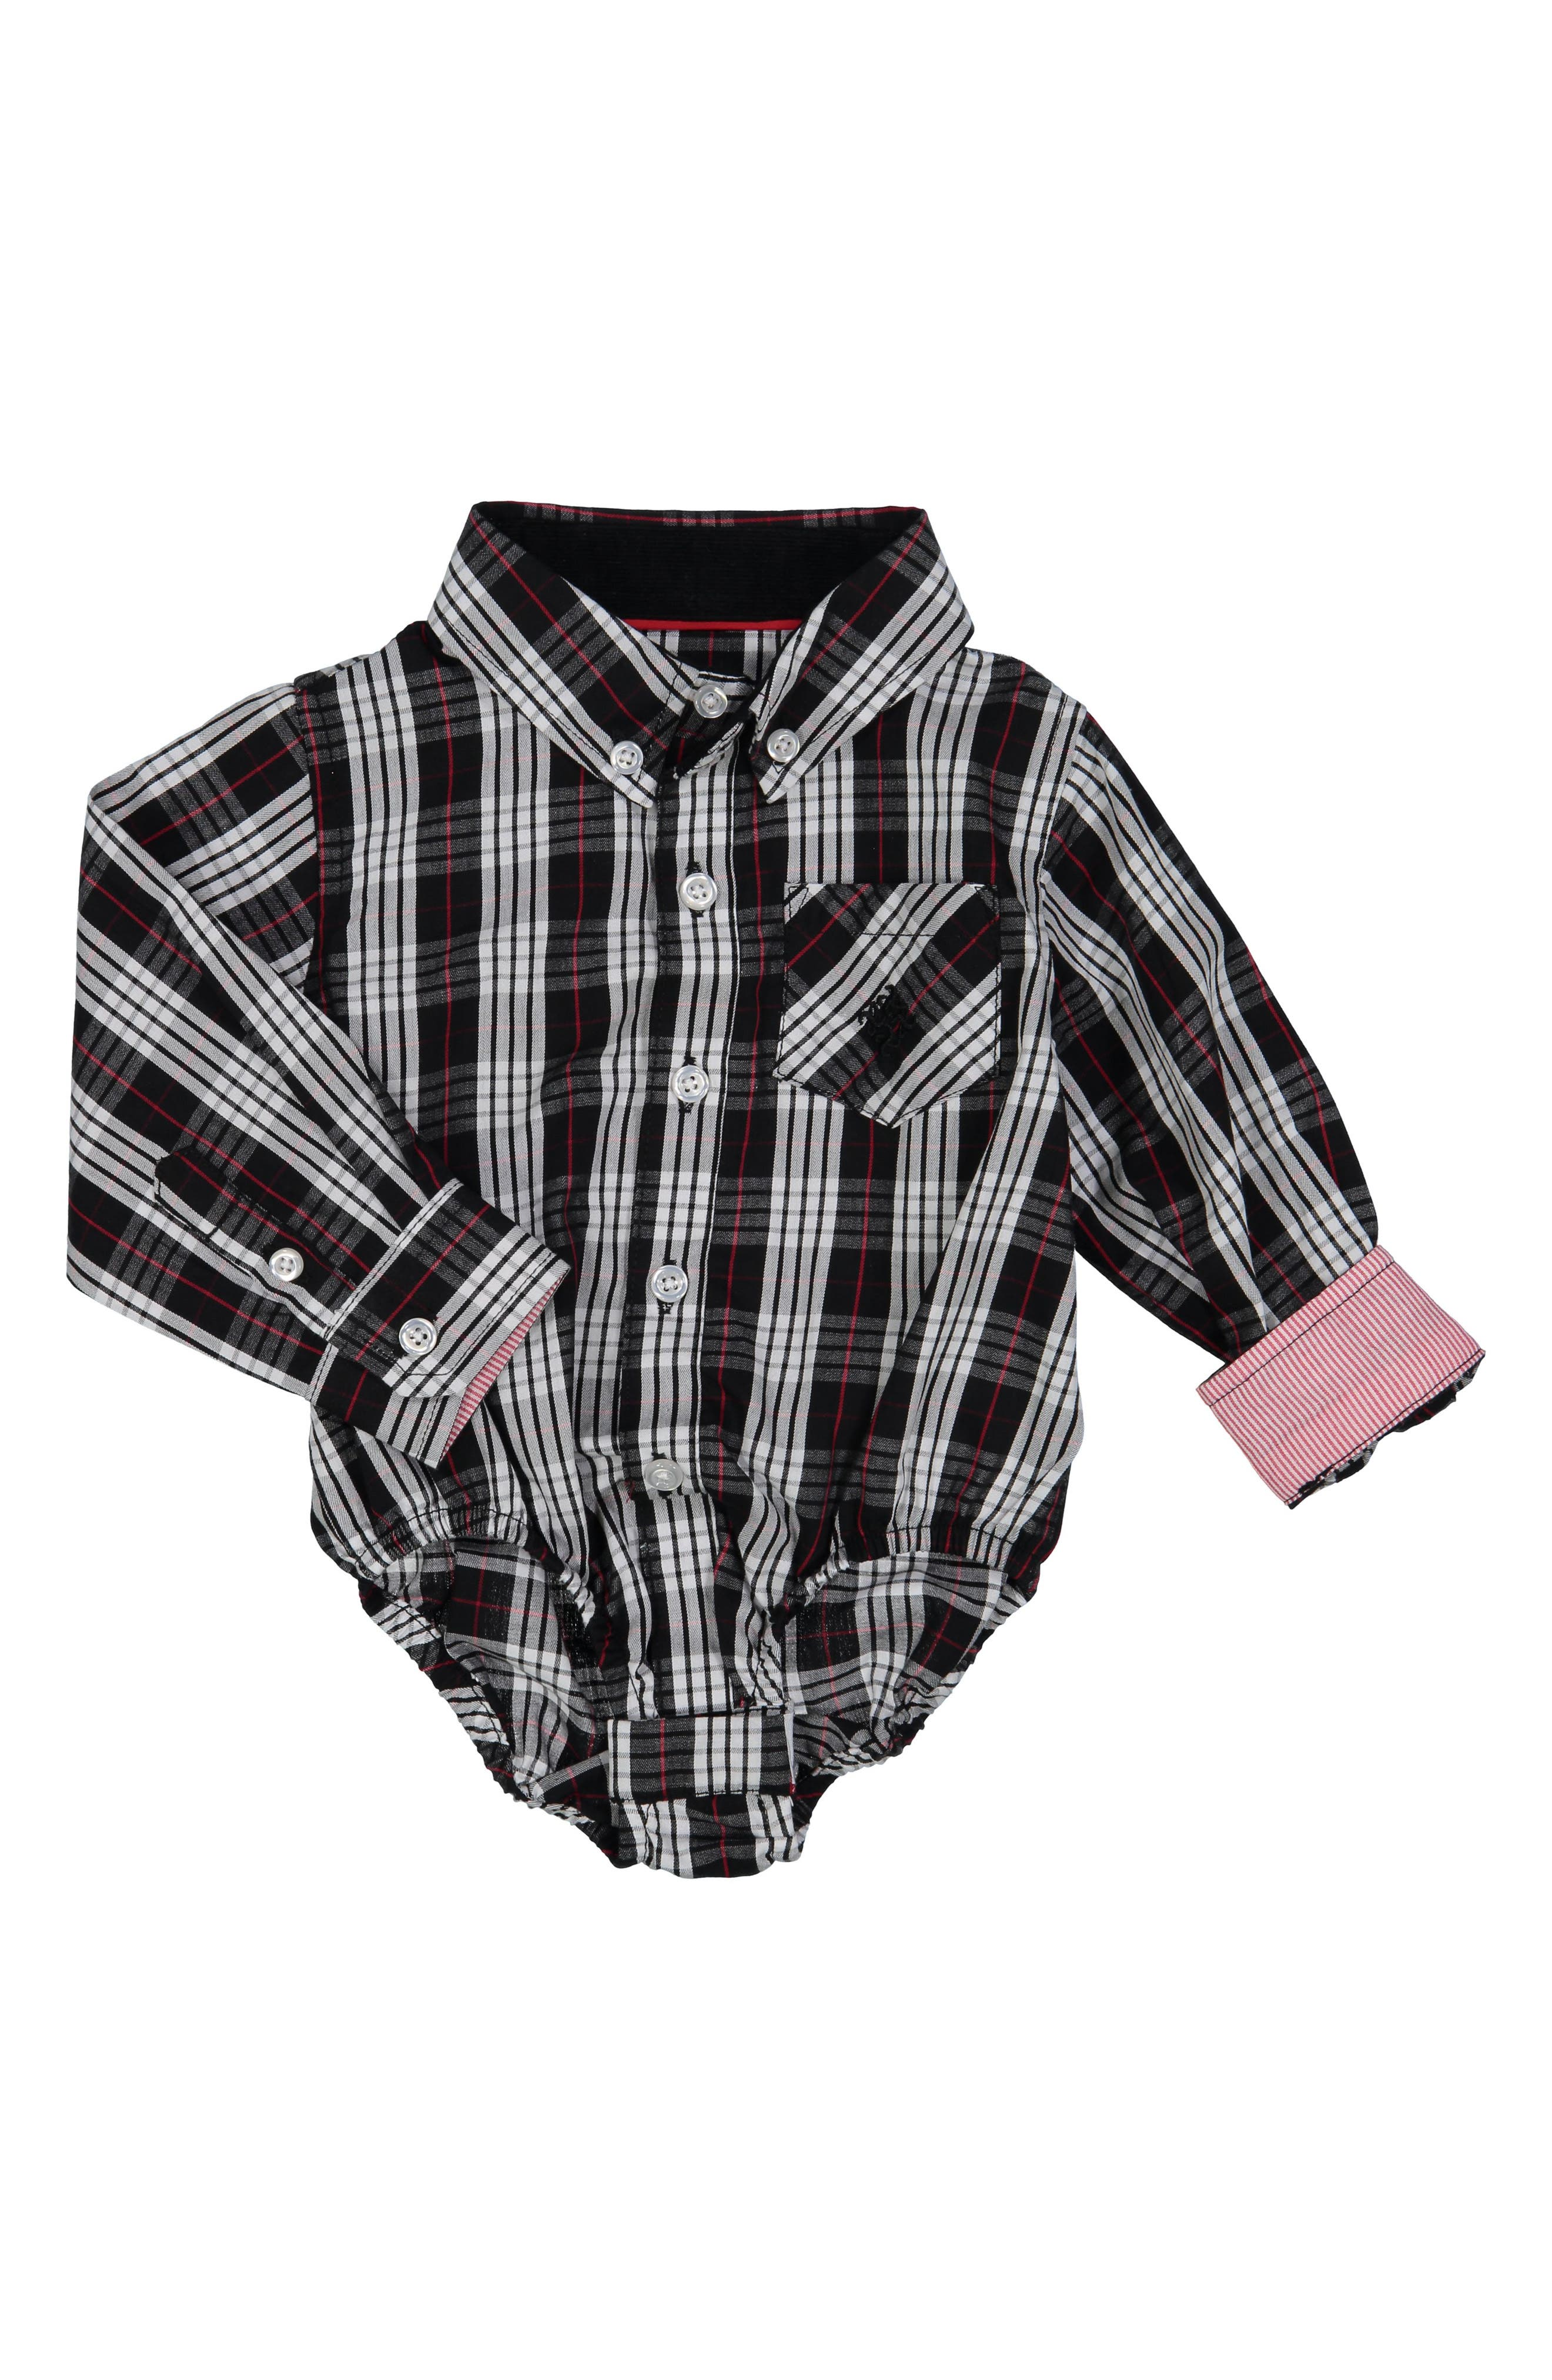 Alternate Image 1 Selected - Andy & Evan Shirtzie Holiday Check Bodysuit (Baby Boys)